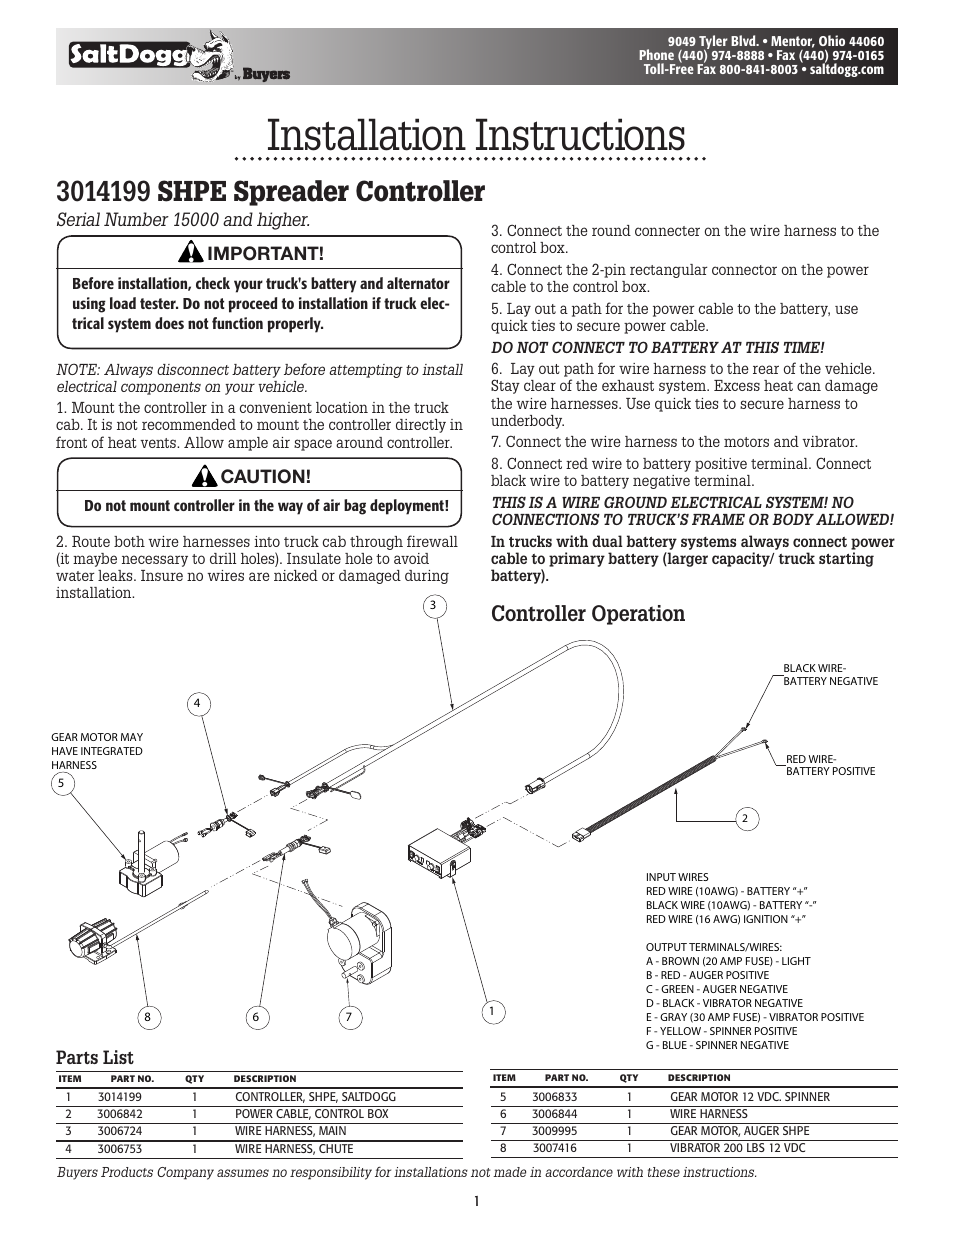 saltdogg shpe controller (3014199) shpe0750, shpe1500, shpe2000 Fisher Wiring Diagram saltdogg shpe controller (3014199) shpe0750, shpe1500, shpe2000, shpe4000 user manual 2 pages